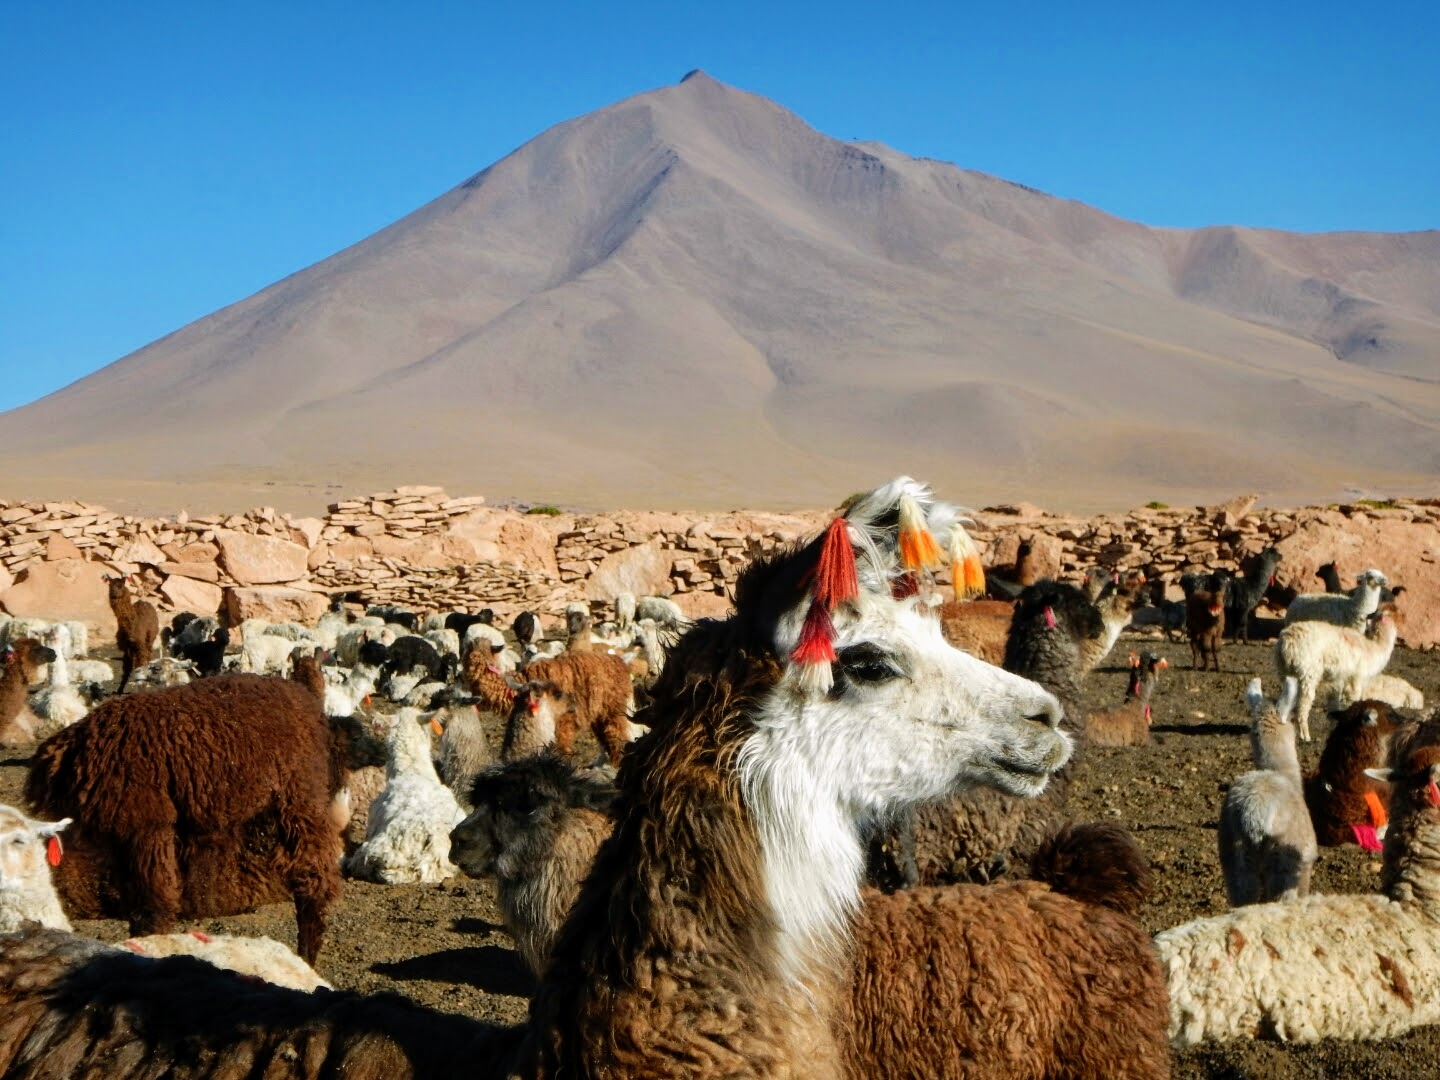 A llama chilling out in front of a mountain